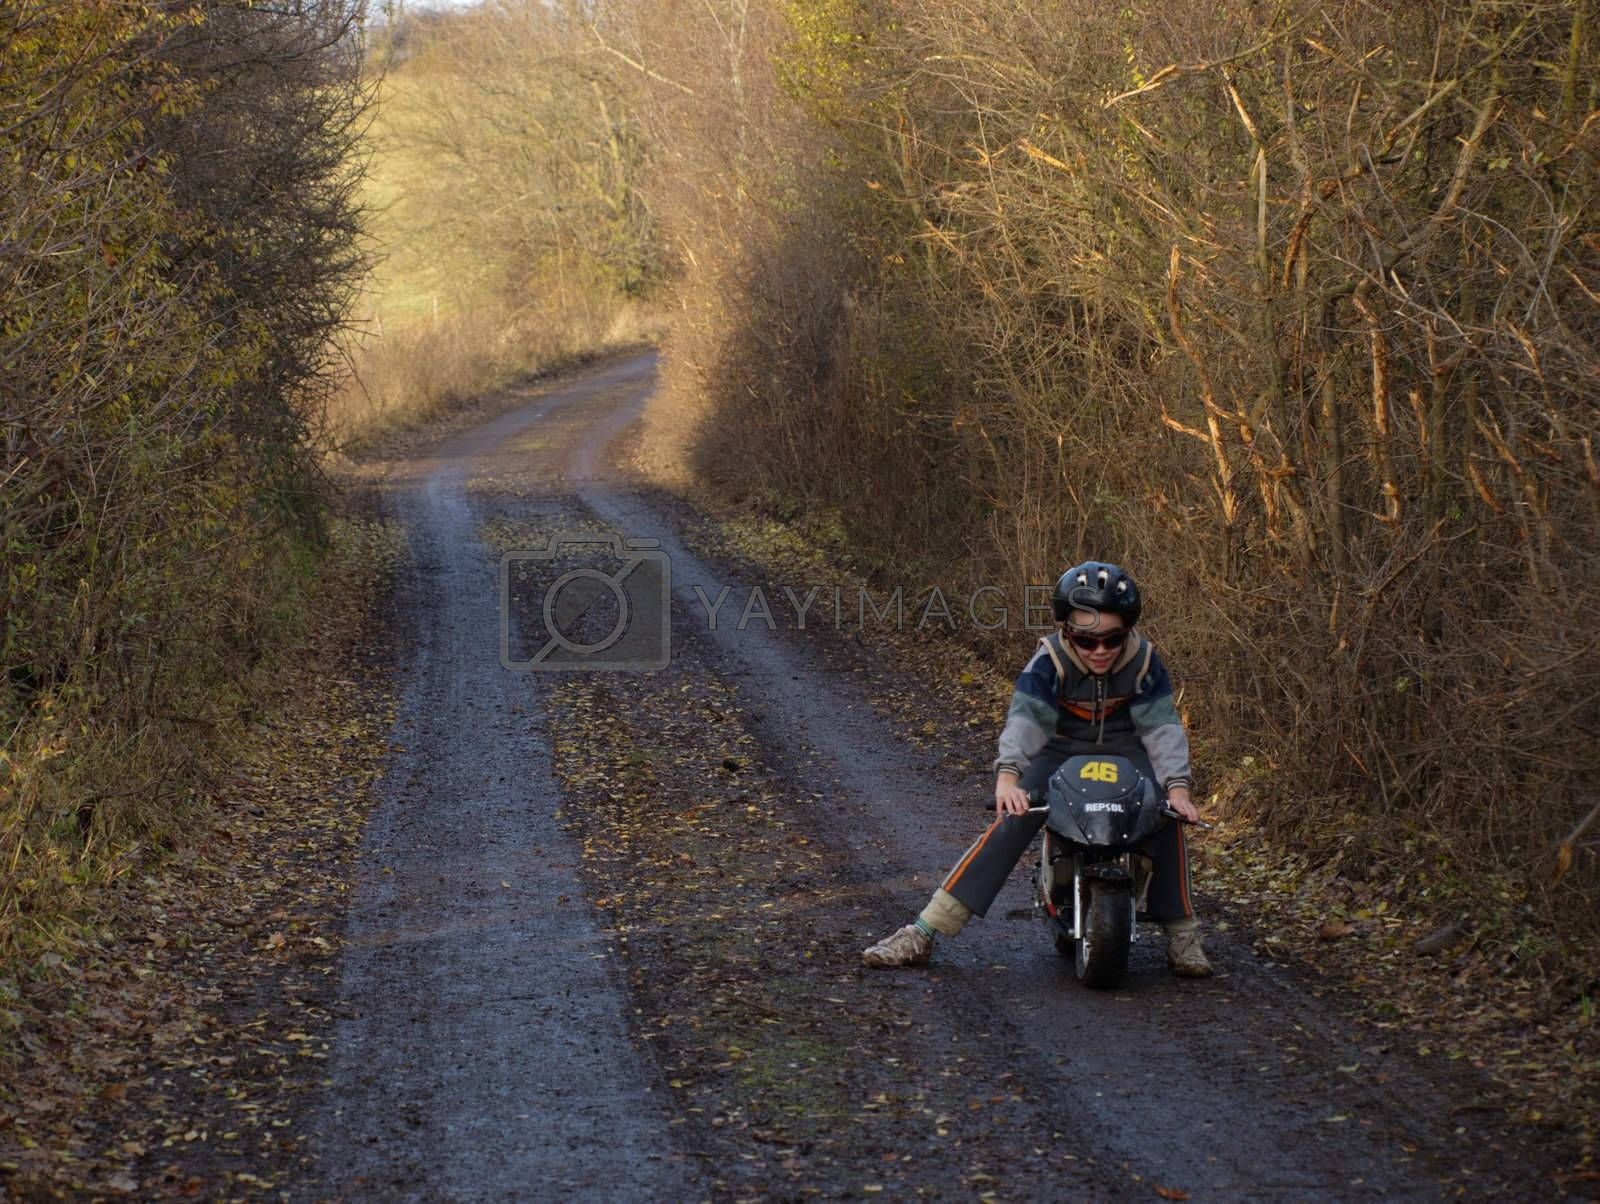 small biker by renales